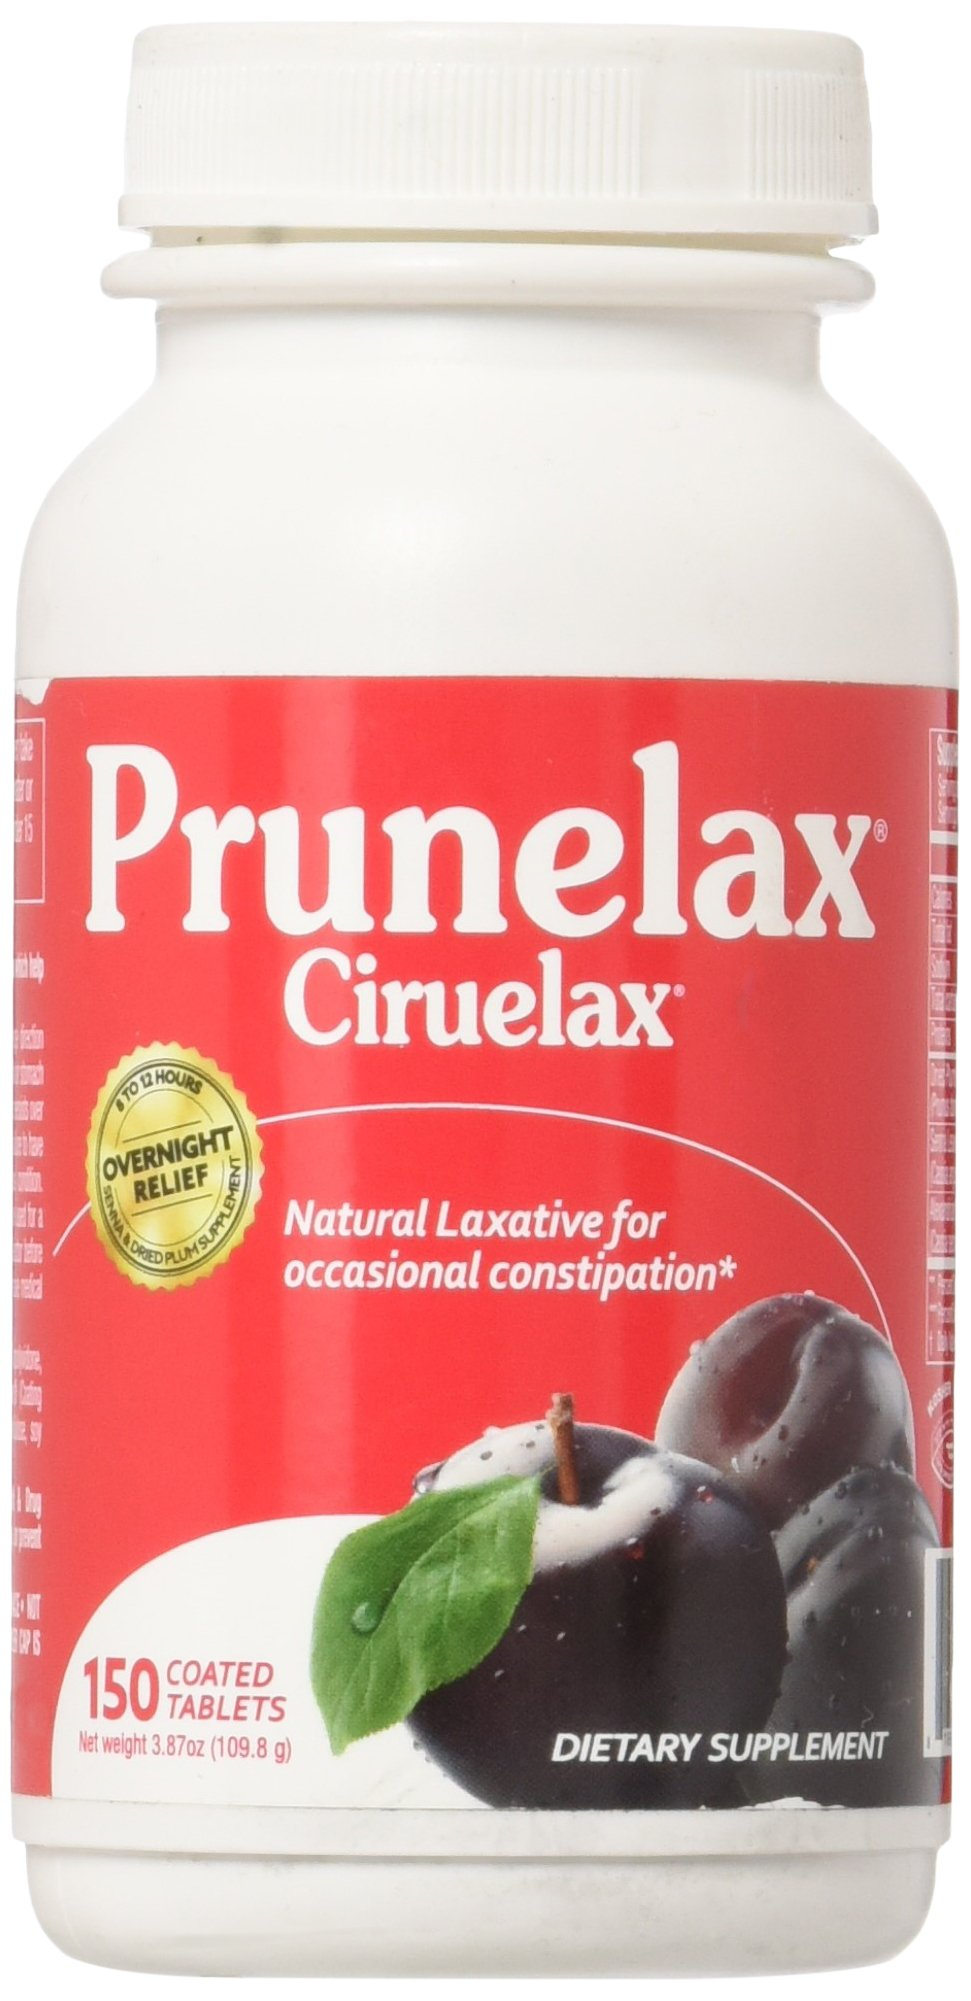 Amazon.com: Prunelax Ciruelax Laxative, Tablets 150 ea: Health & Personal Care